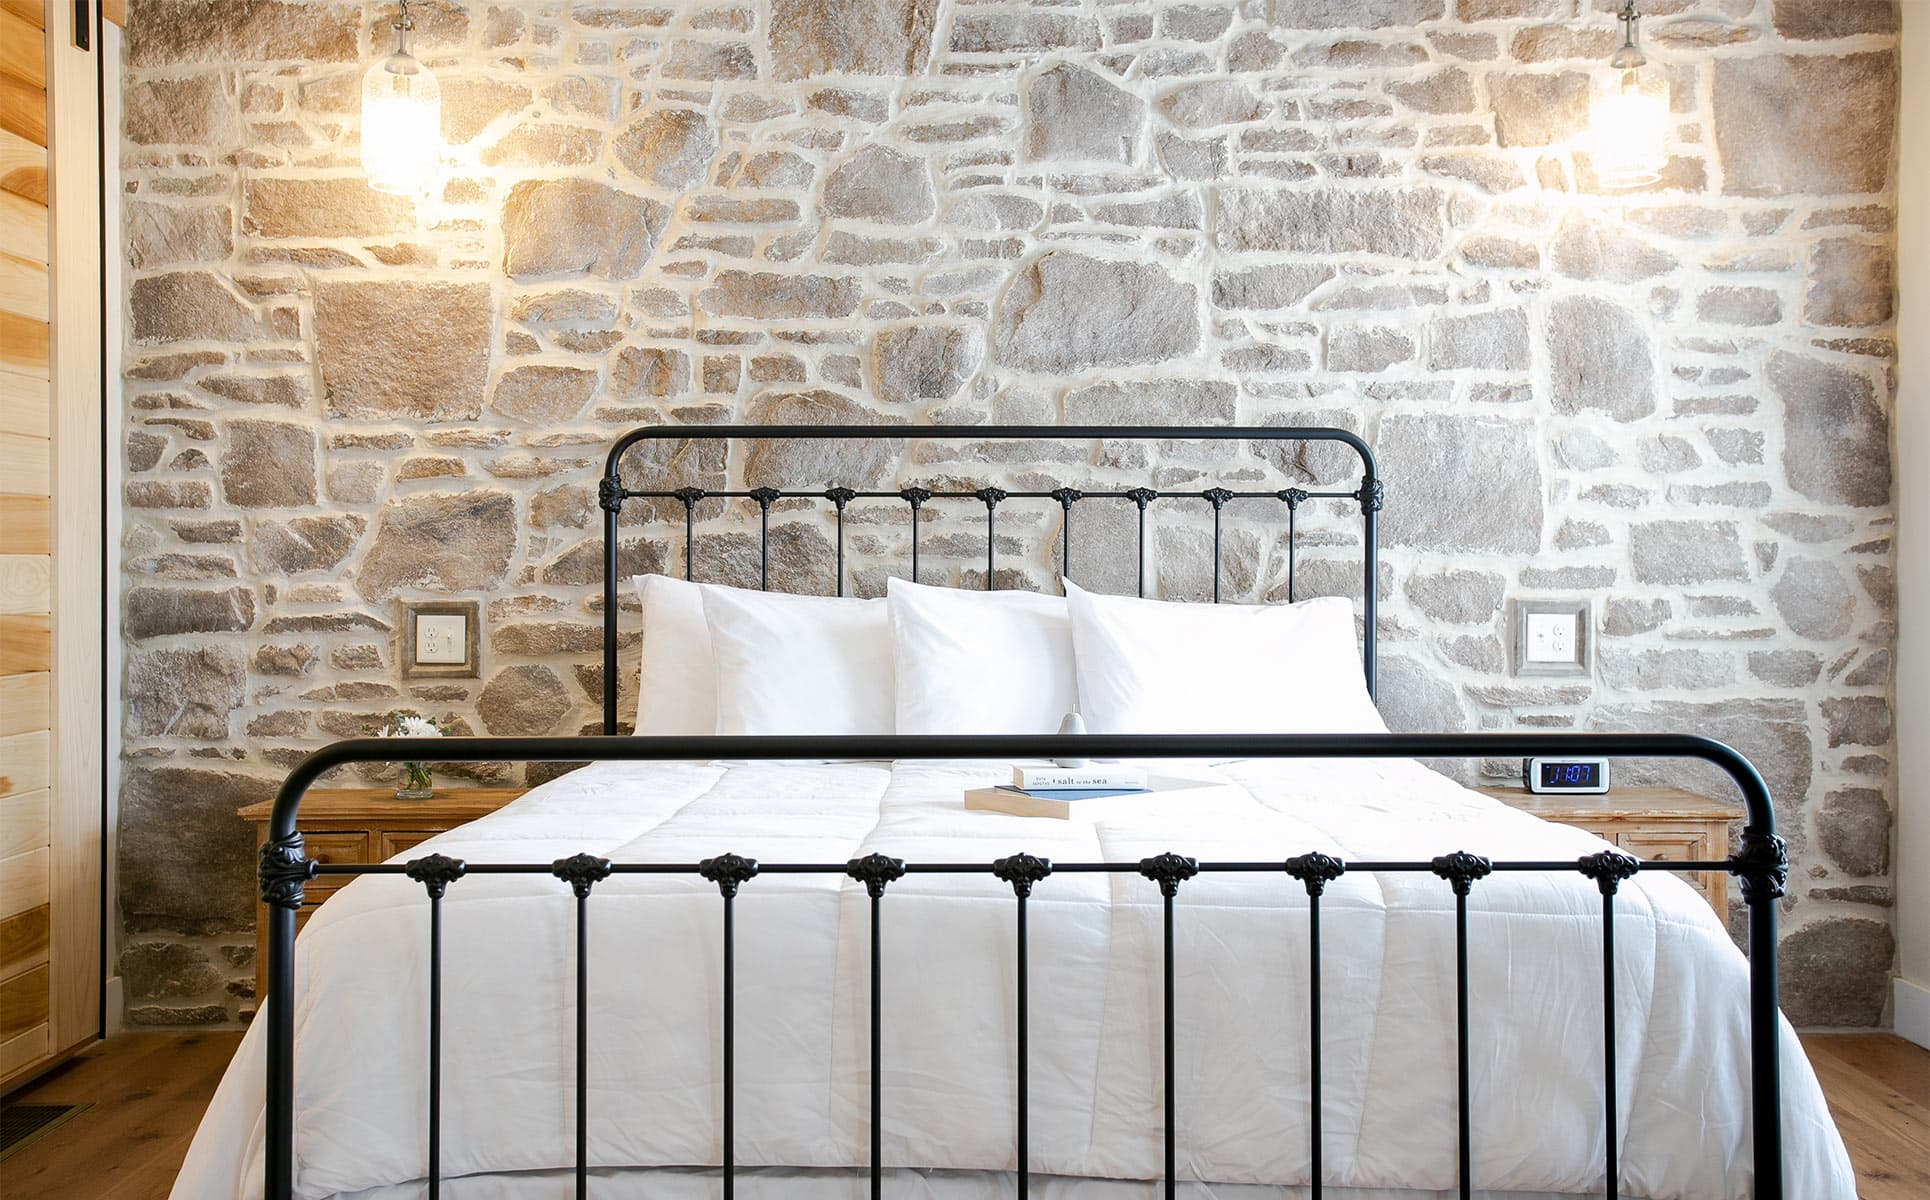 King bed against stone wall